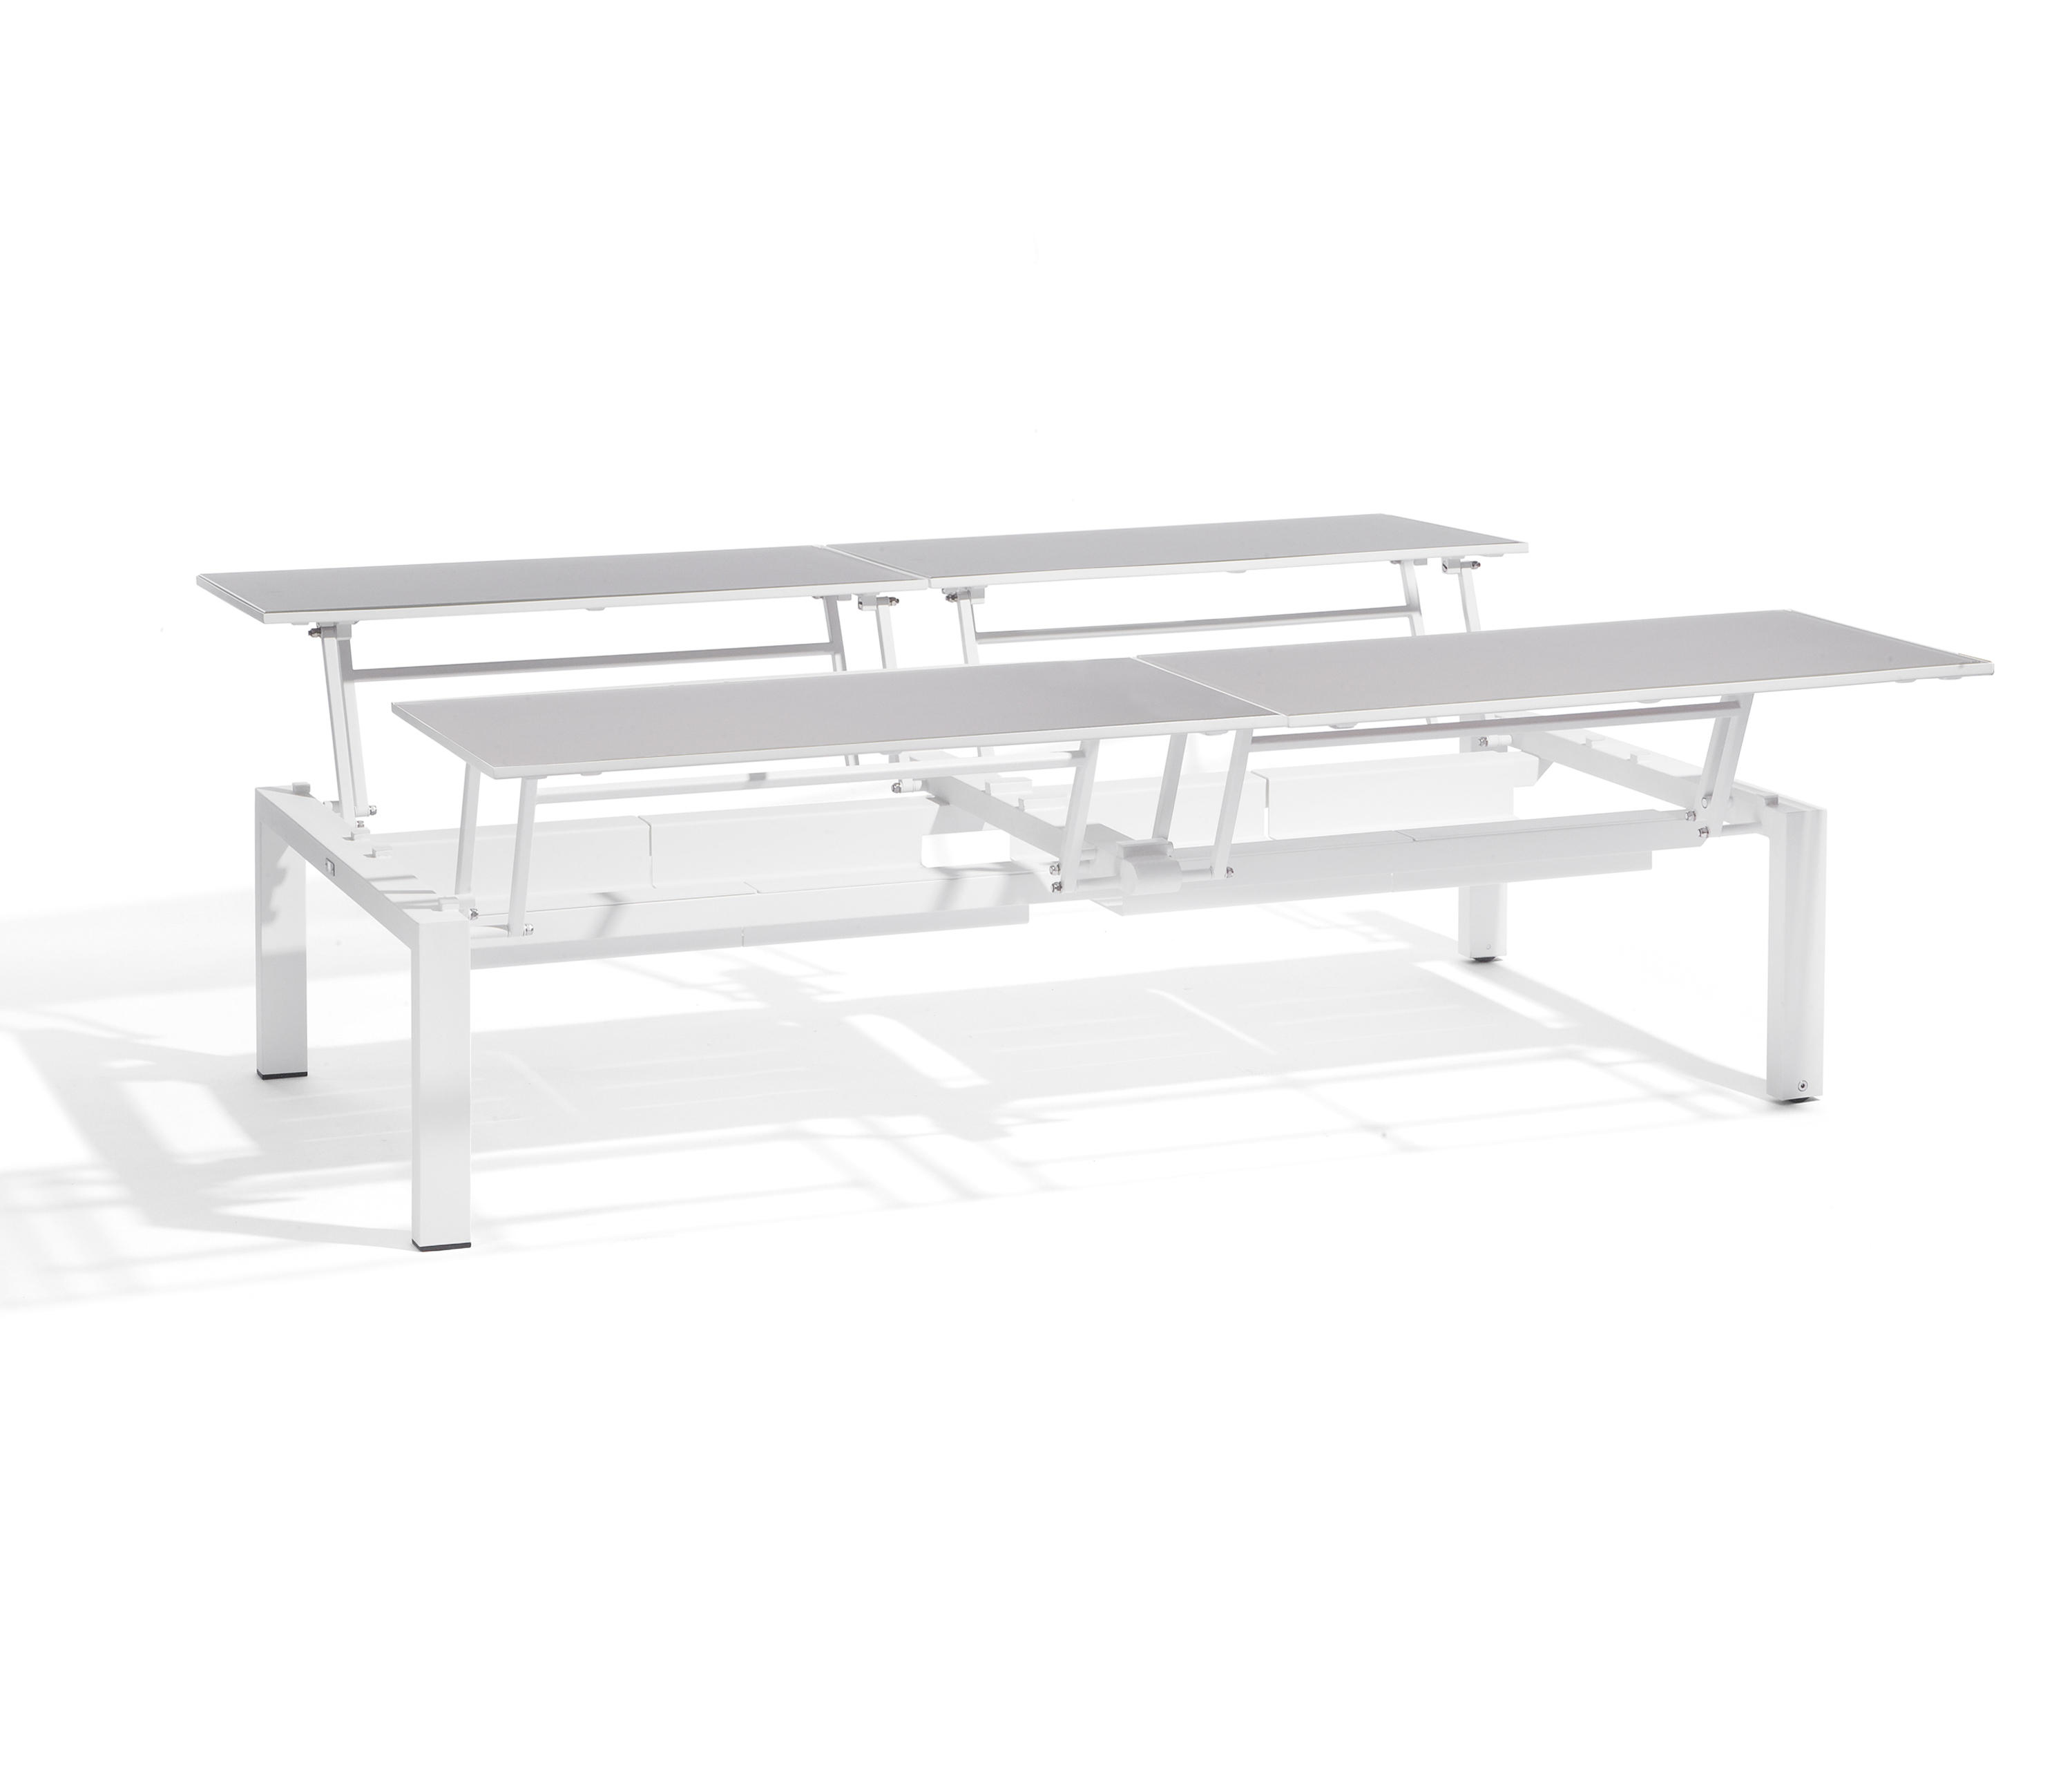 coffee tables height-adjustable - high quality designer coffee